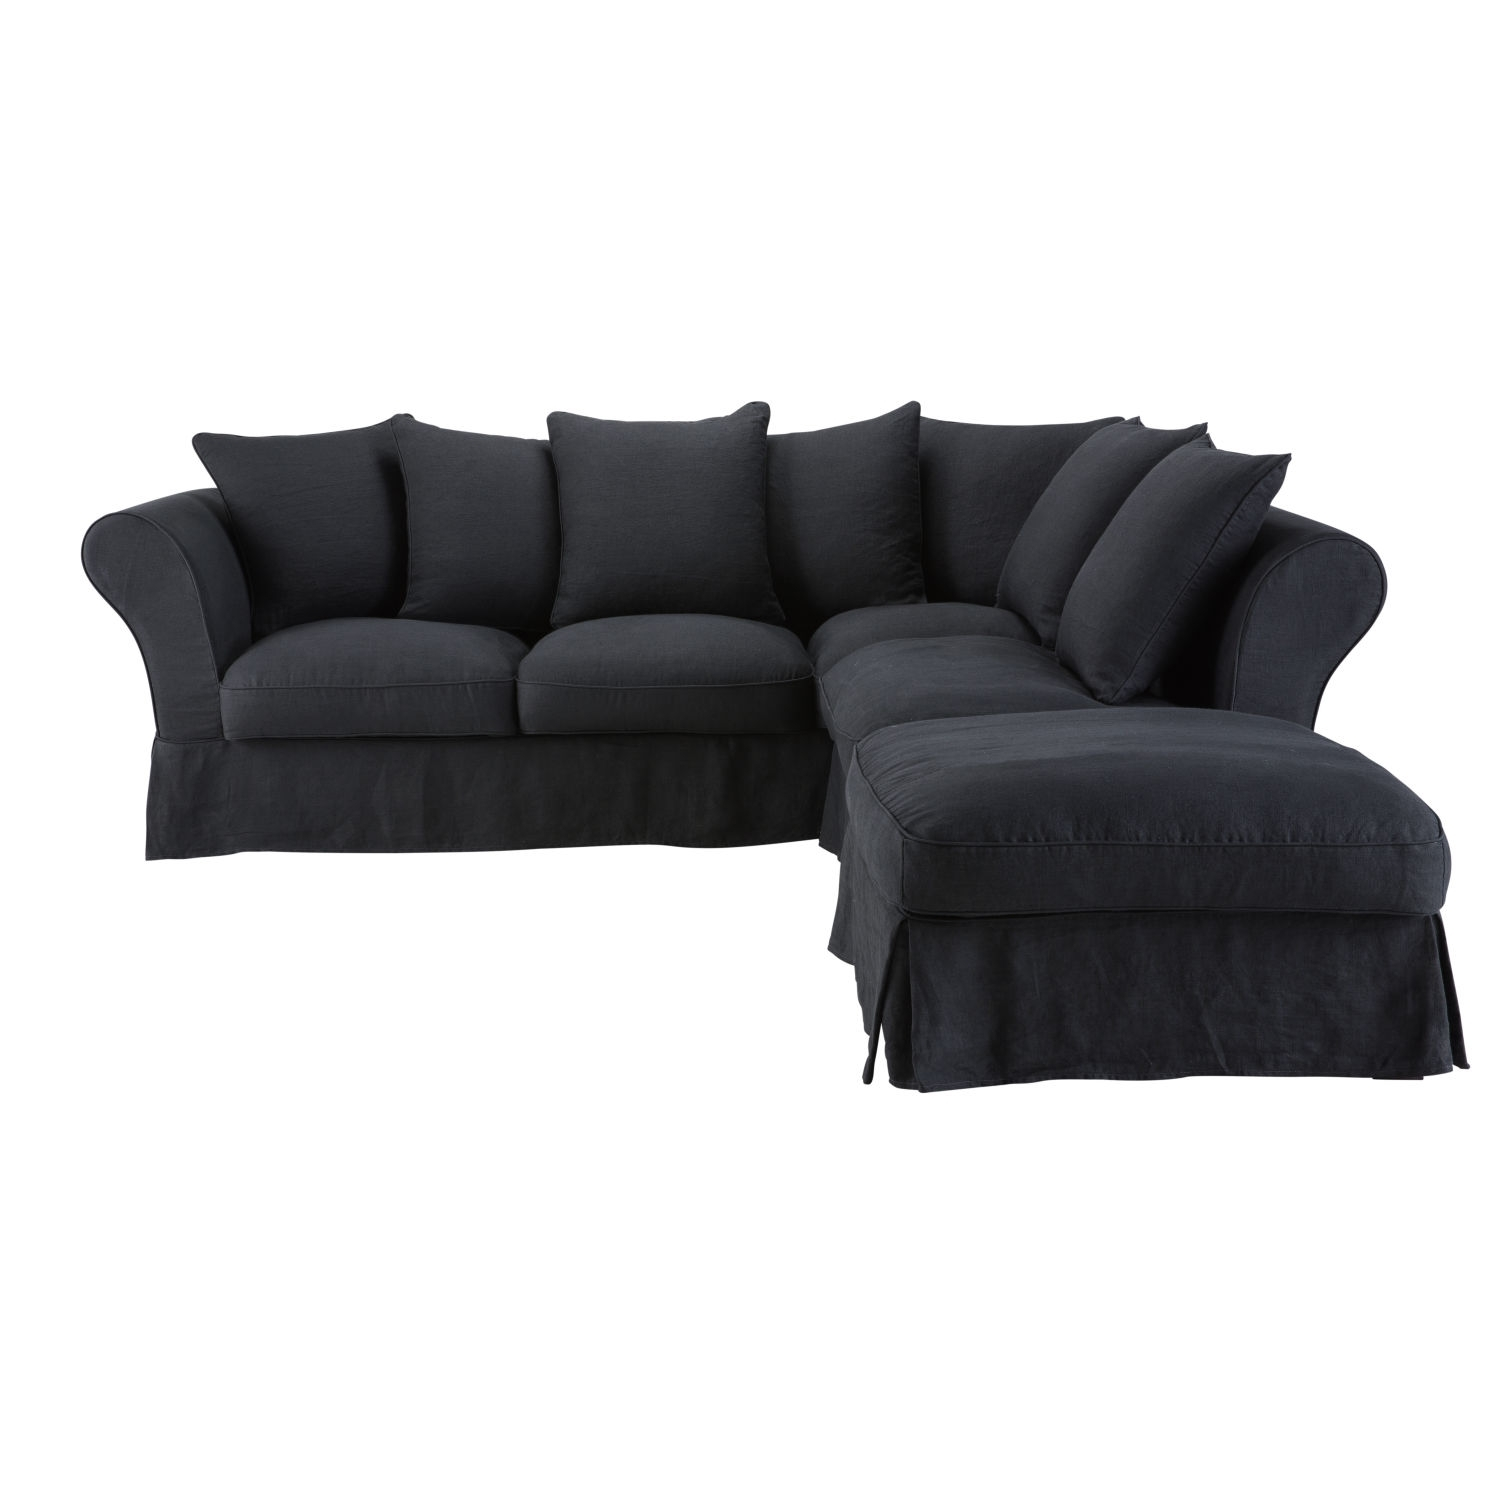 Charcoal Leather Corner Sofa - Sofa Design Ideas inside Denali Charcoal Grey 6 Piece Reclining Sectionals With 2 Power Headrests (Image 8 of 30)